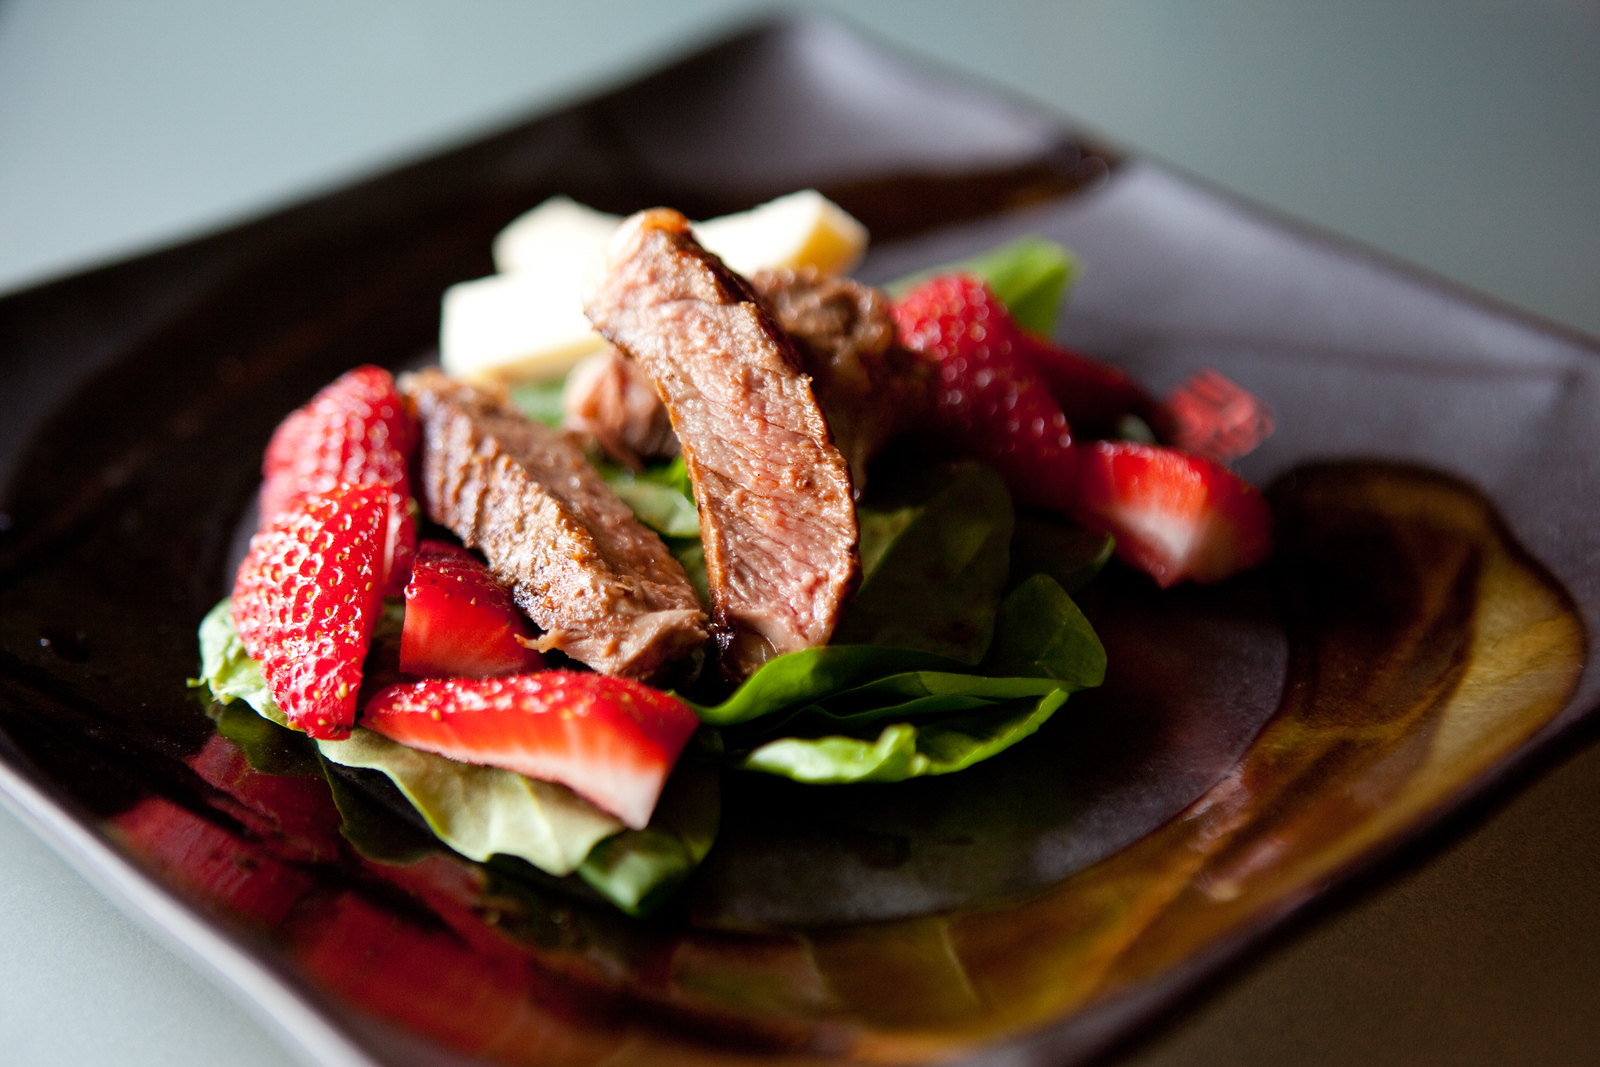 Strawberry salad with chili rubbed grilled ribeye